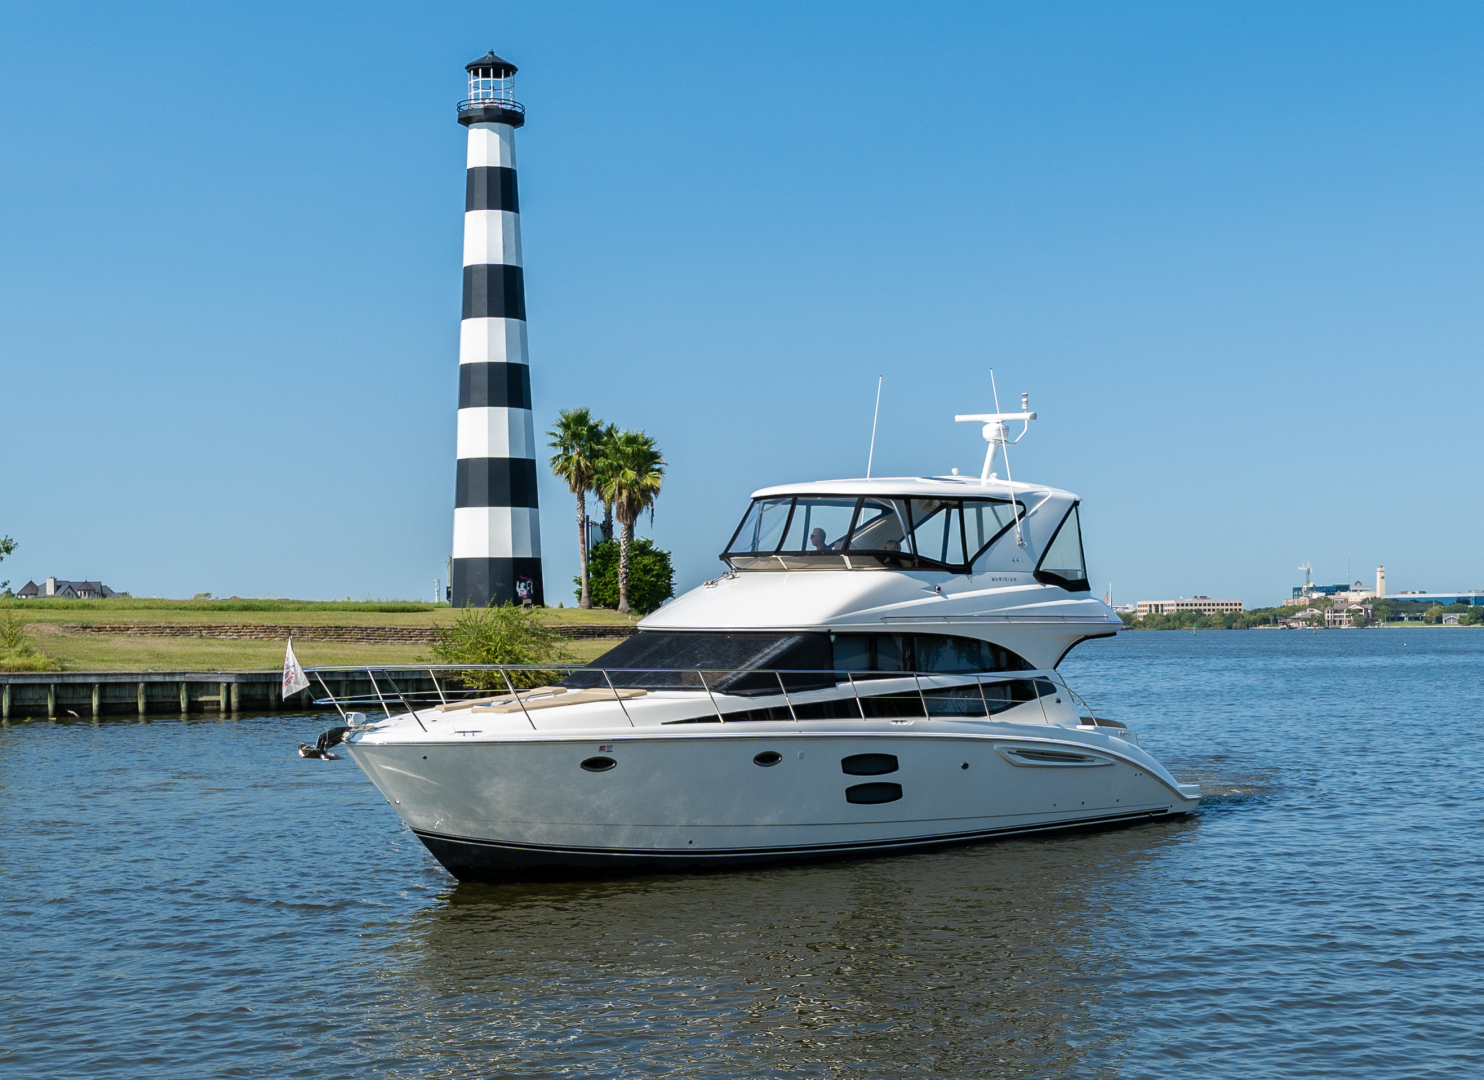 Meridian-441 Motor Yacht 2016-Friend Ship League City-Texas-United States-1508215 | Thumbnail